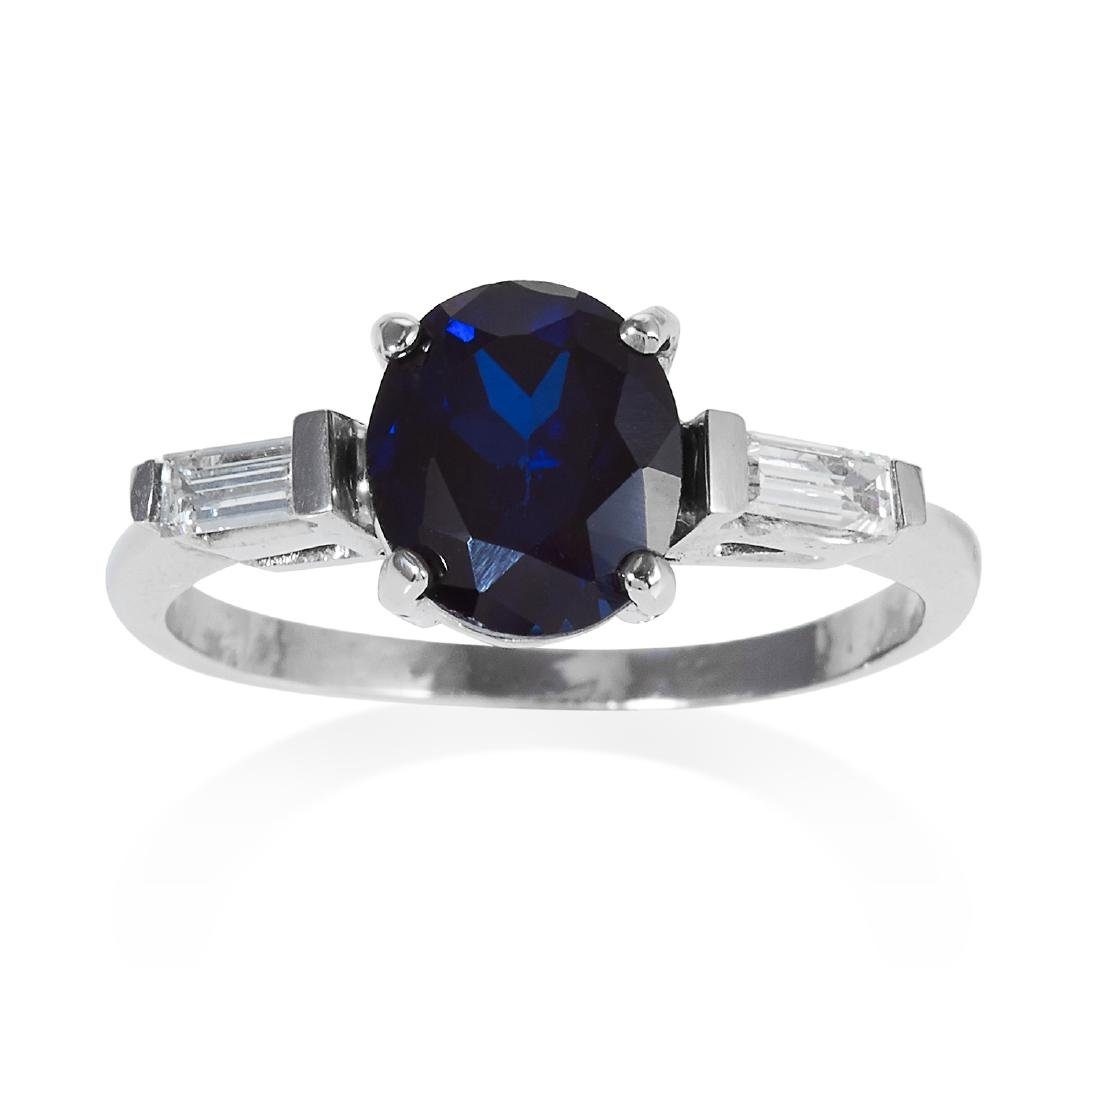 A SAPPHIRE AND DIAMOND RING in white gold, set with a